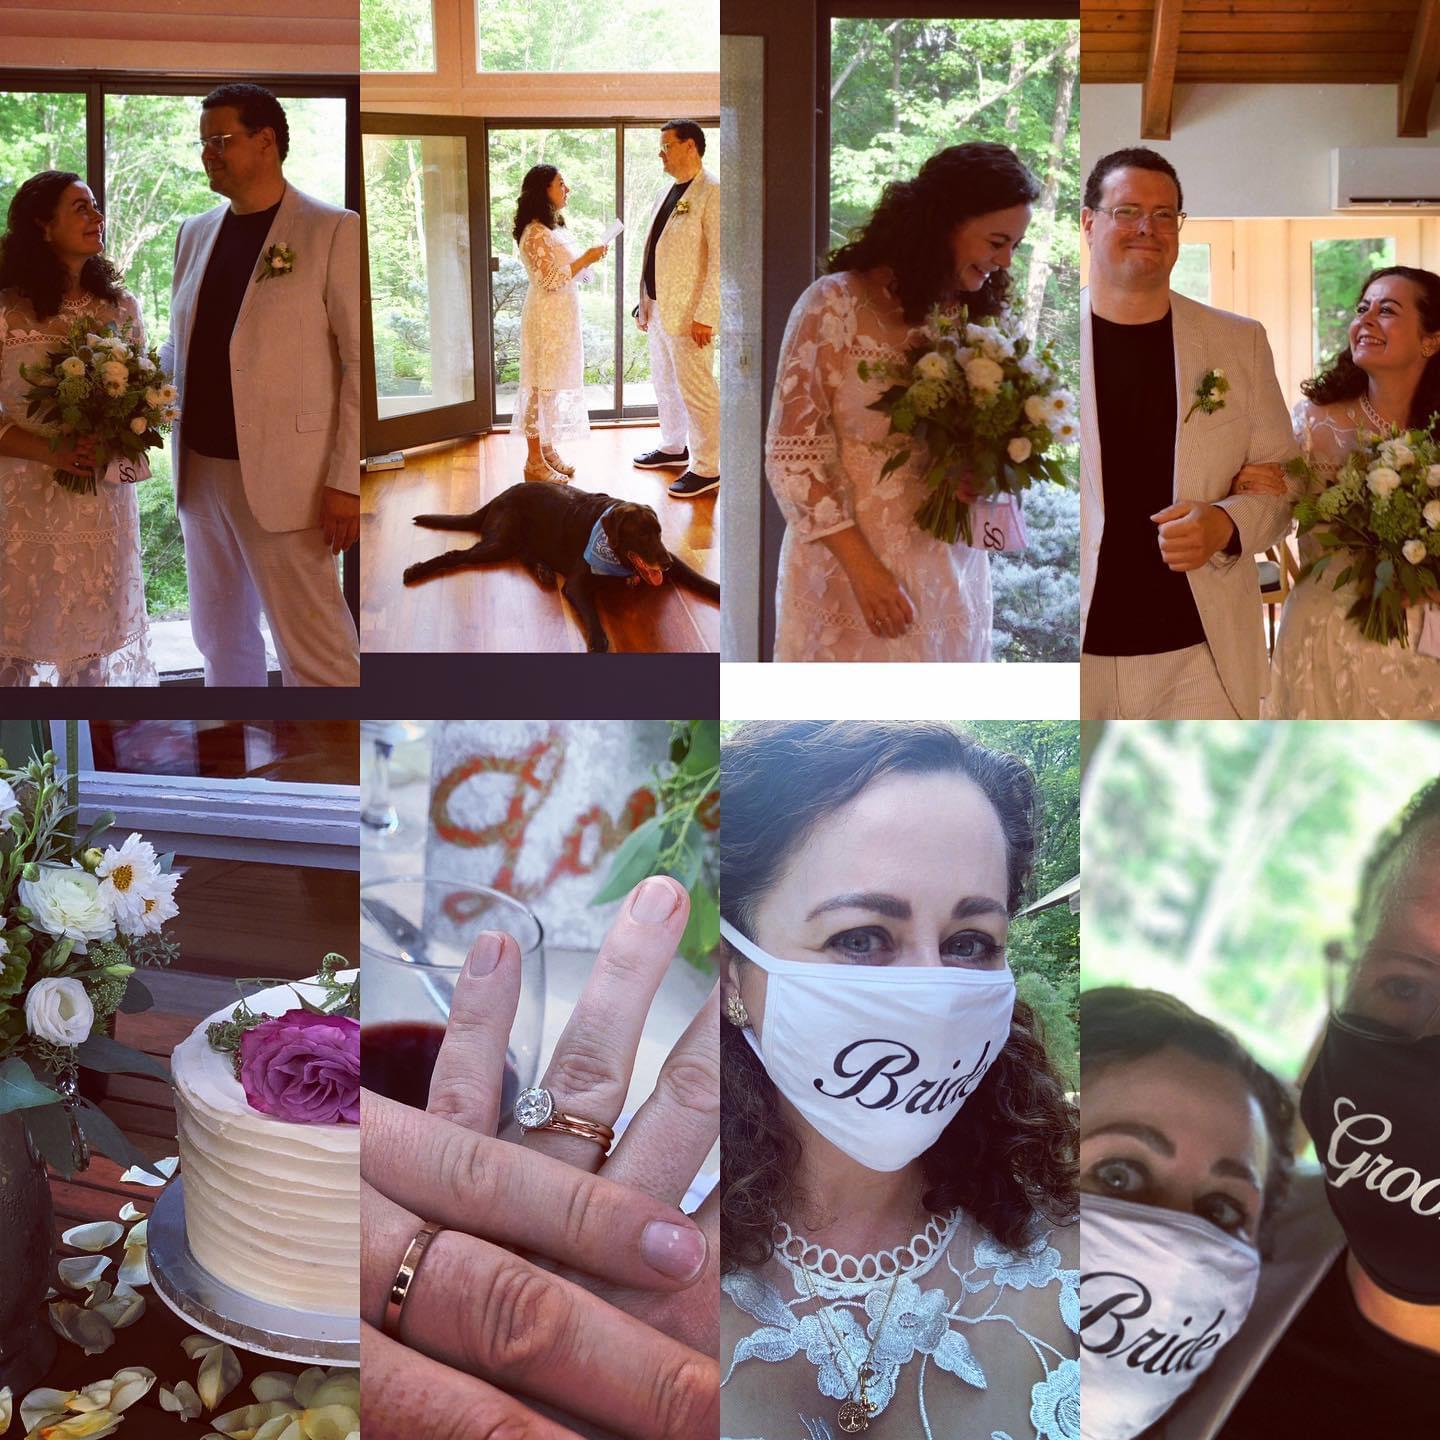 LOCKDOWN LOVERS: Geraldine Hughes and Conor Allen tie the knot at their upstate New York home, complete with face masks for the bride and groom.